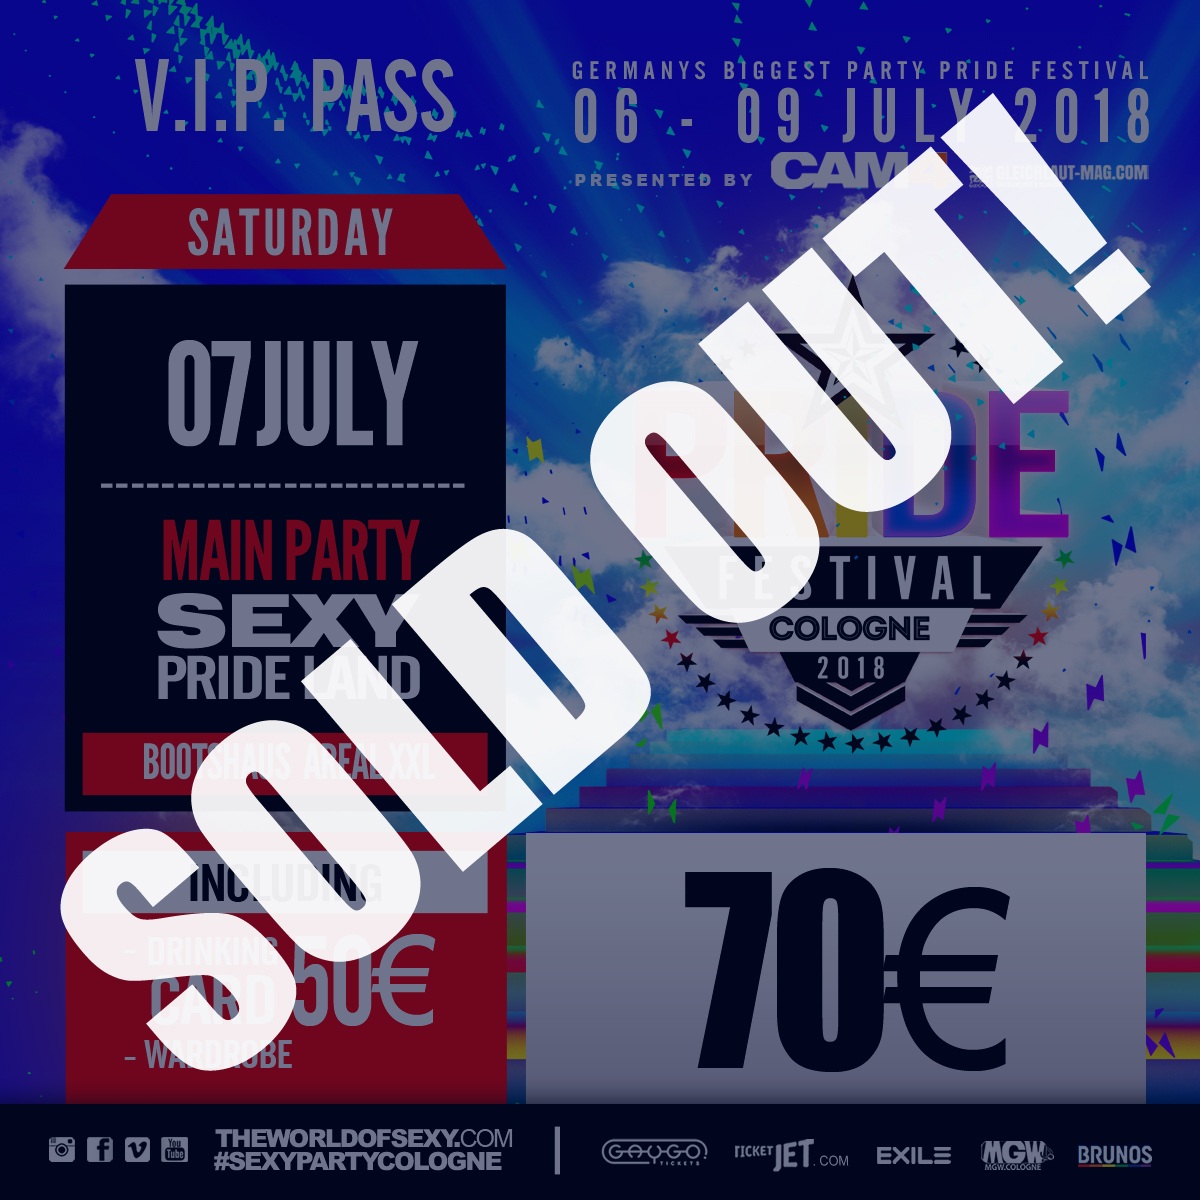 , +++ SOLD OUT : VIP PASS I +++